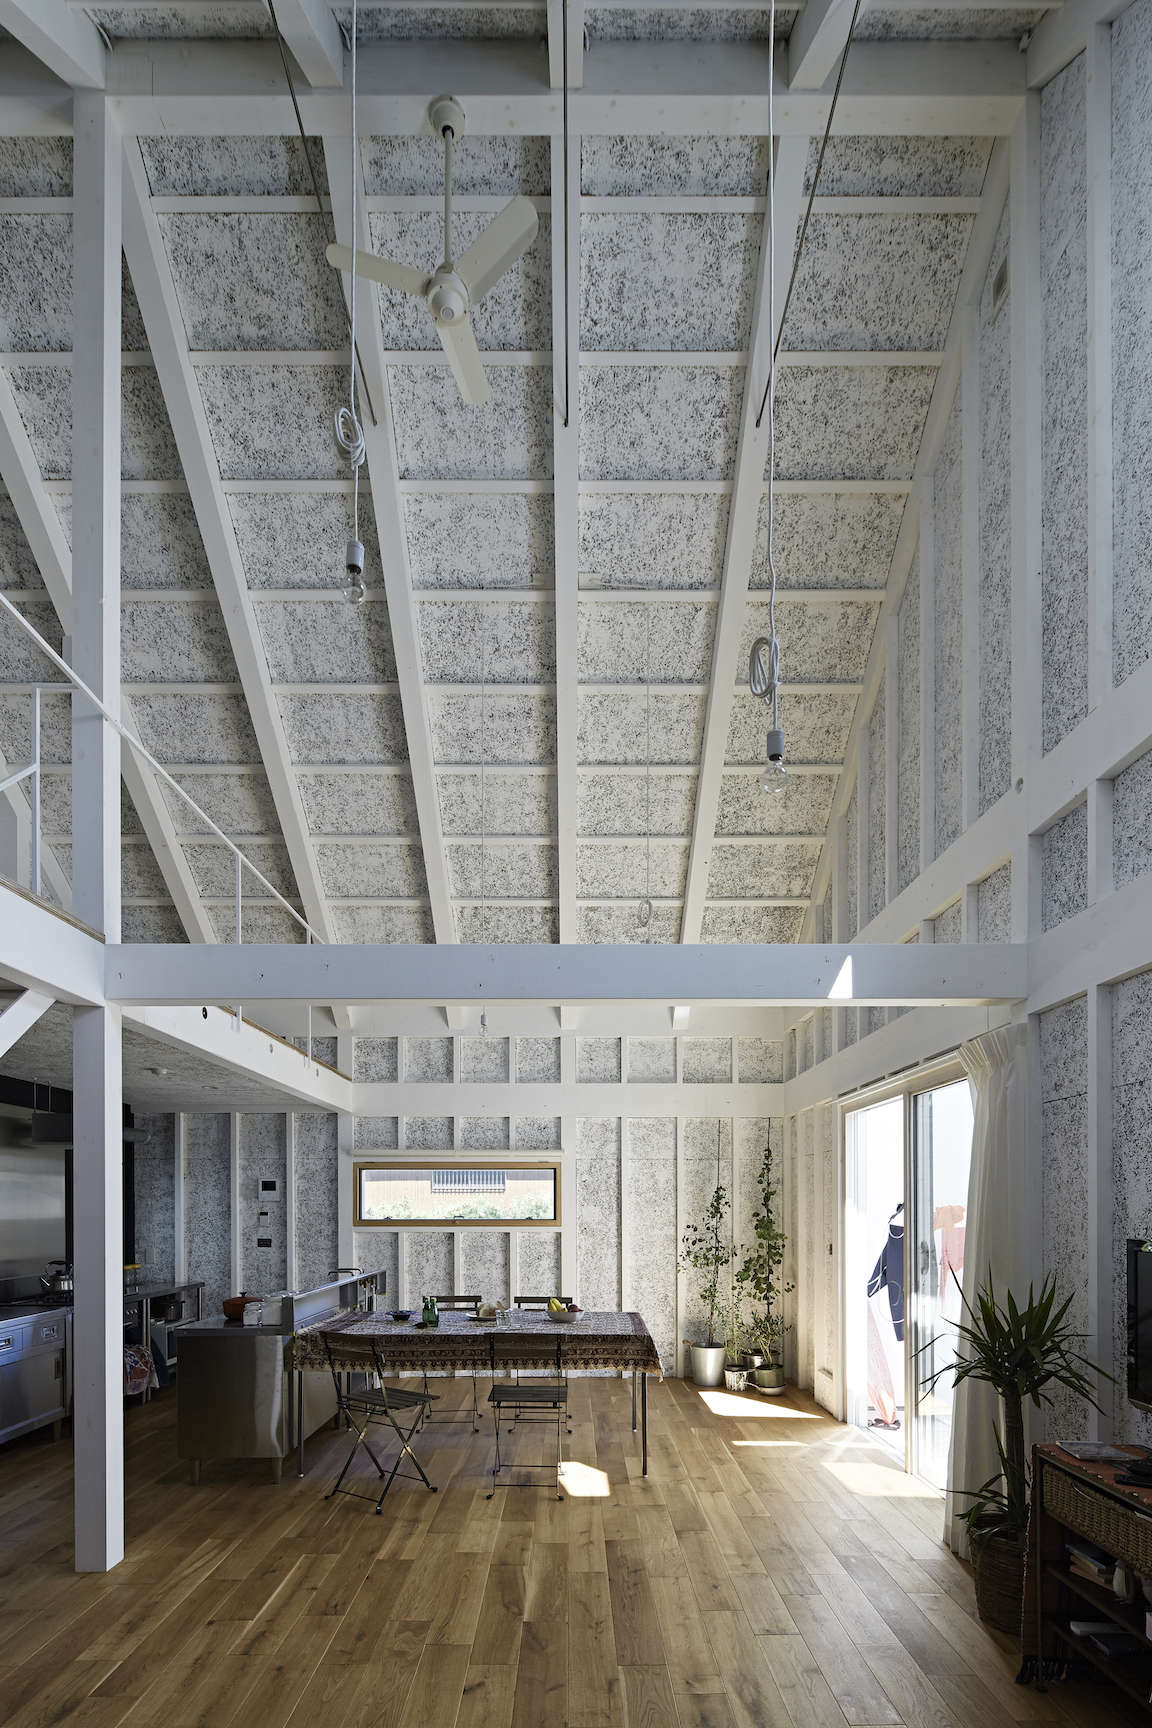 sabi, a surfers' house in chiba, japan, designed by no. 555 architects. the tex 11